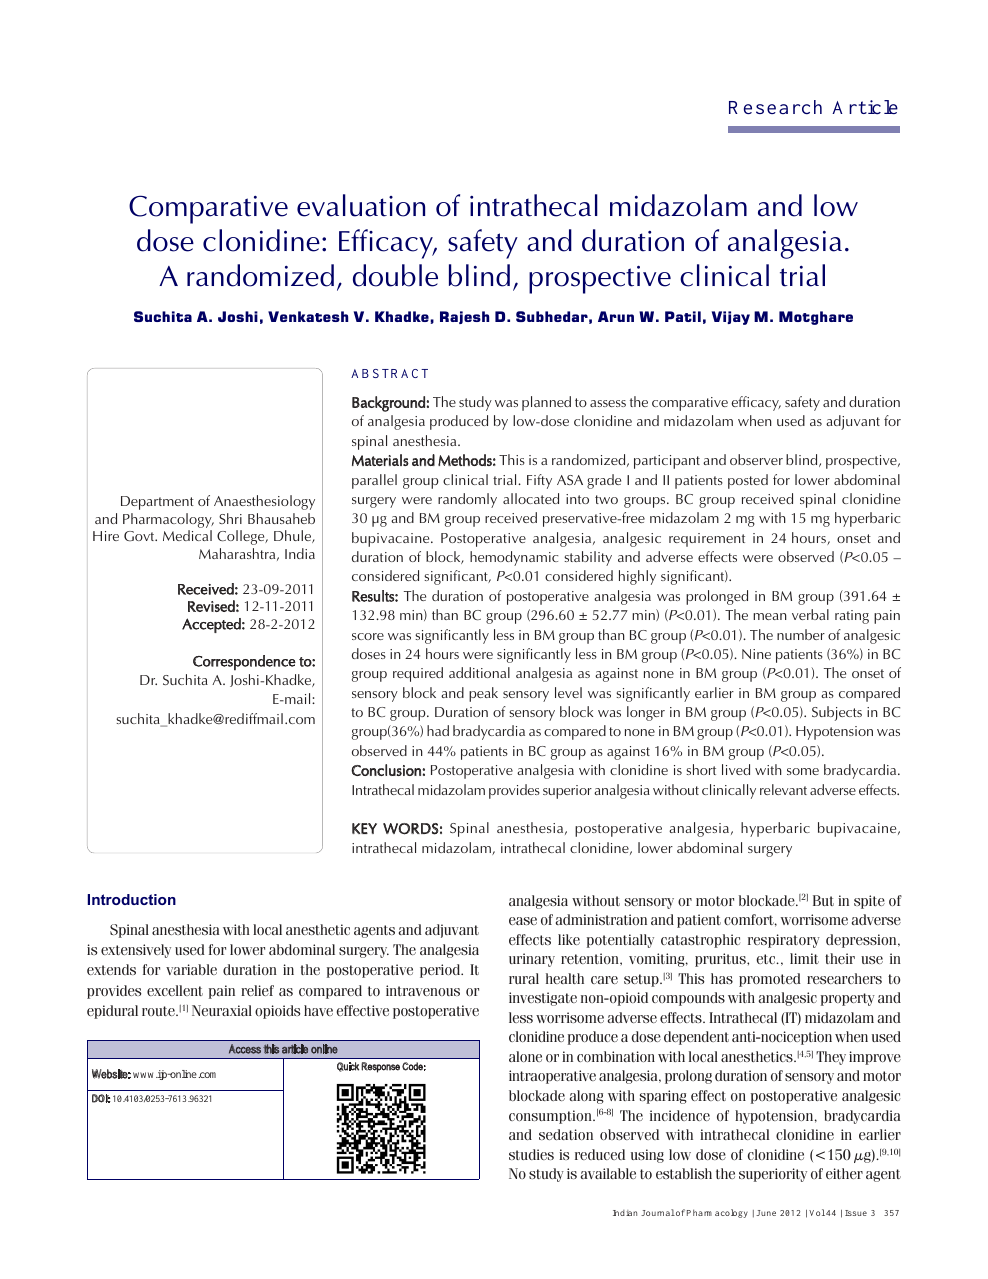 Comparative evaluation of intrathecal midazolam and low dose